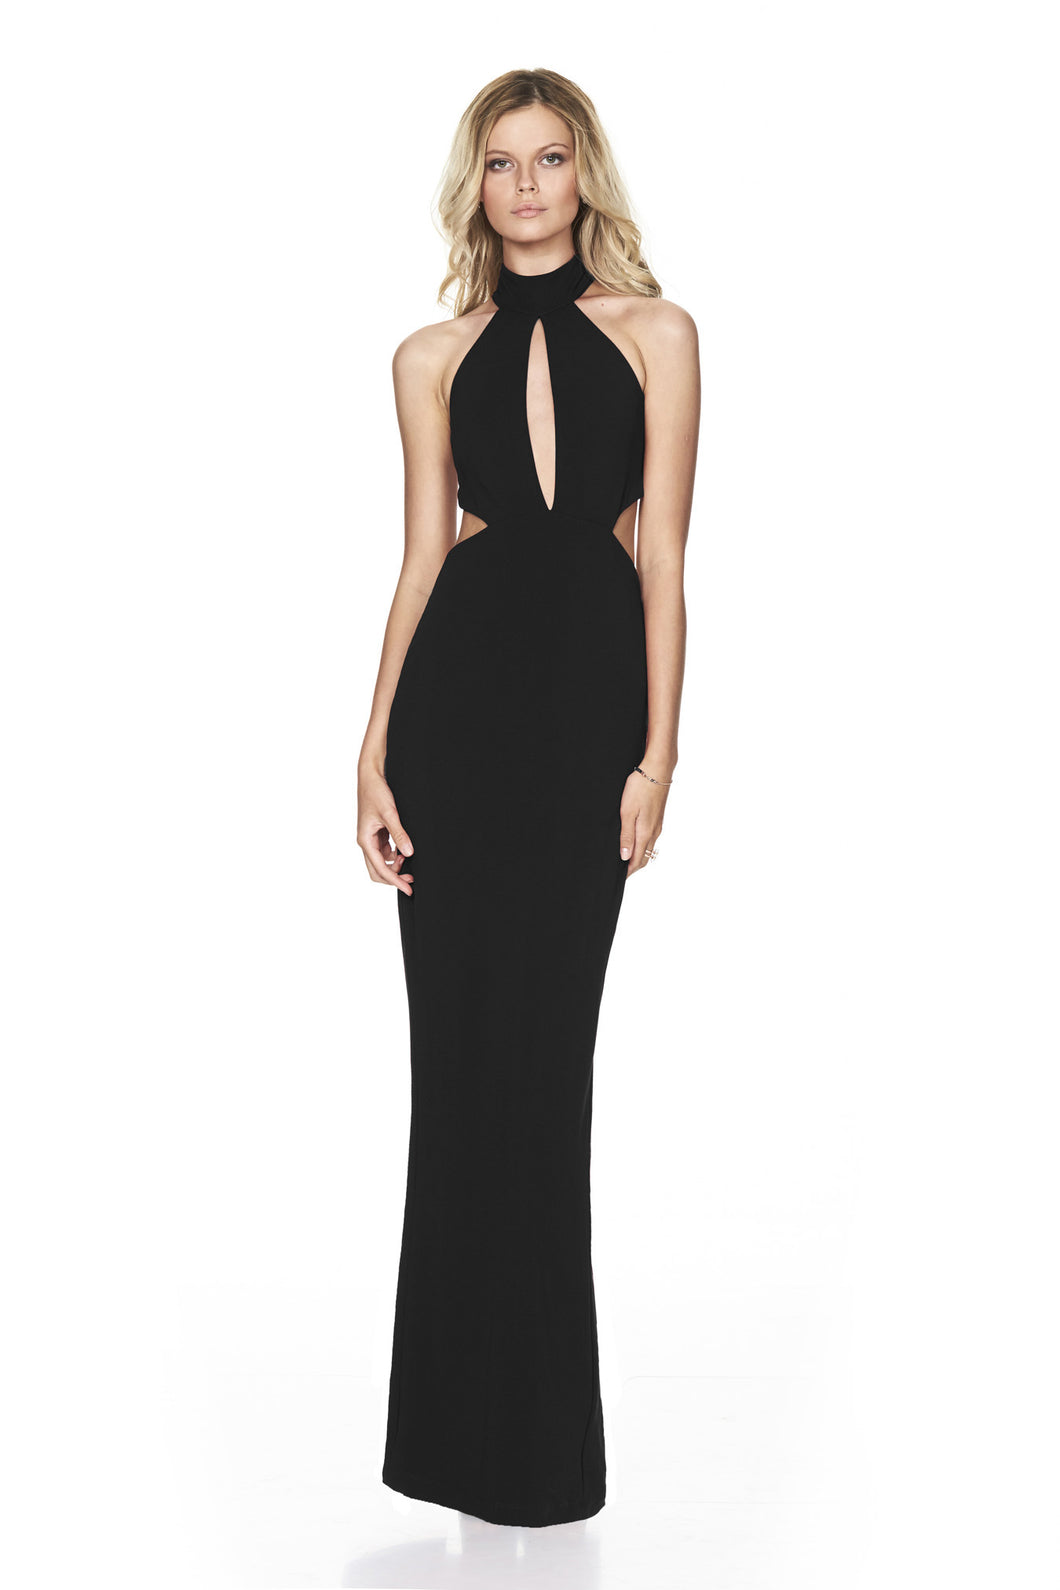 WICKED GAMES GOWN